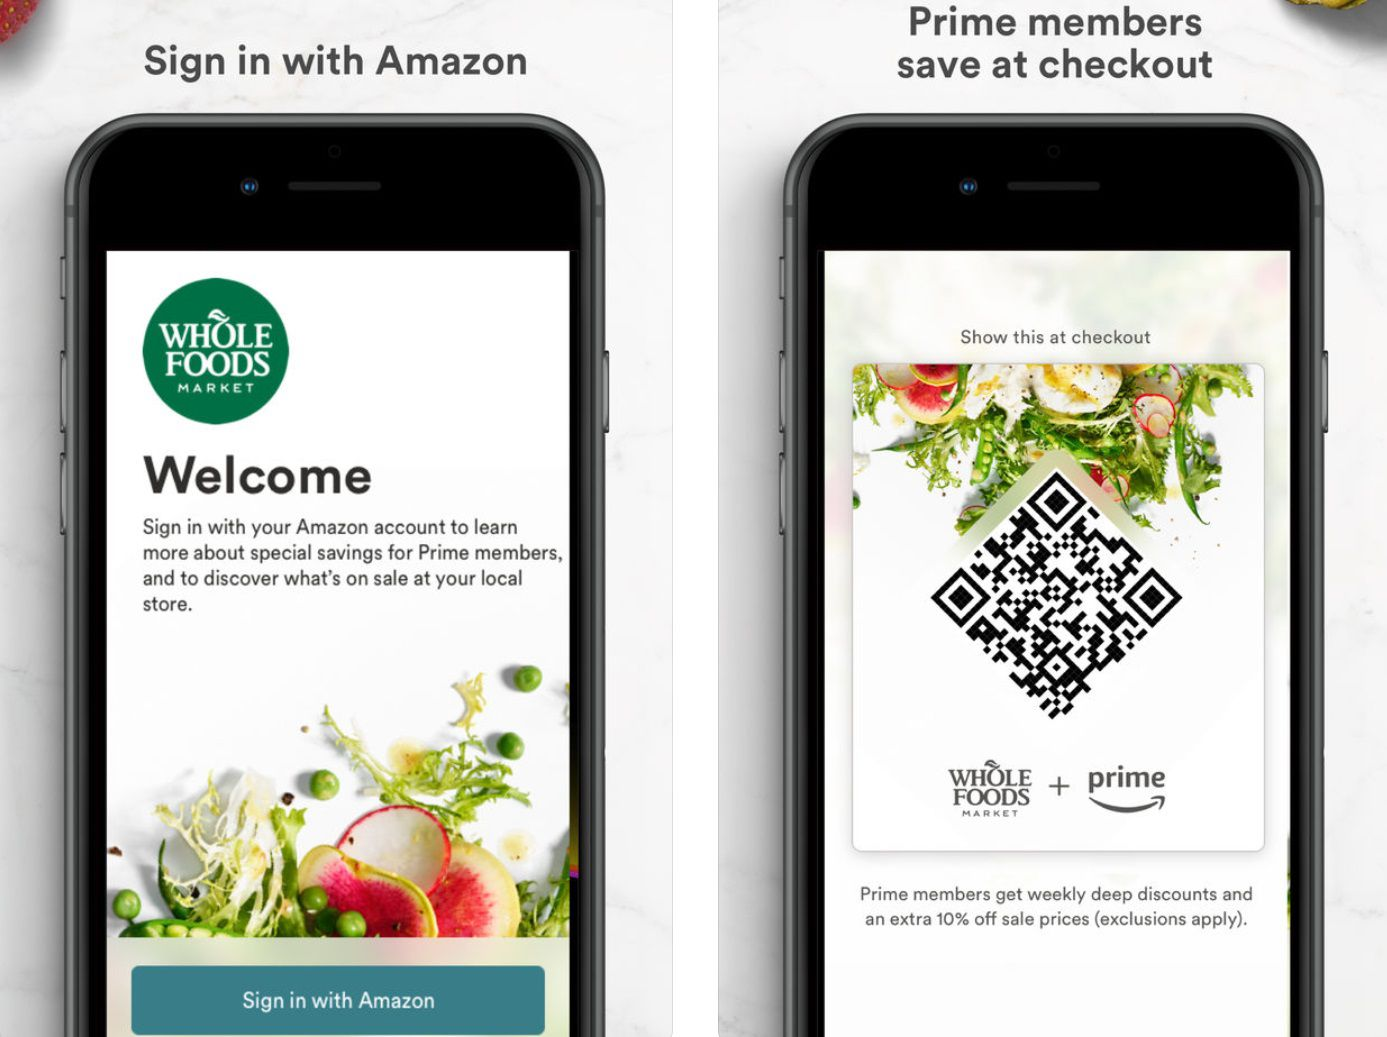 How to Use the Amazon Prime Whole Foods Discount